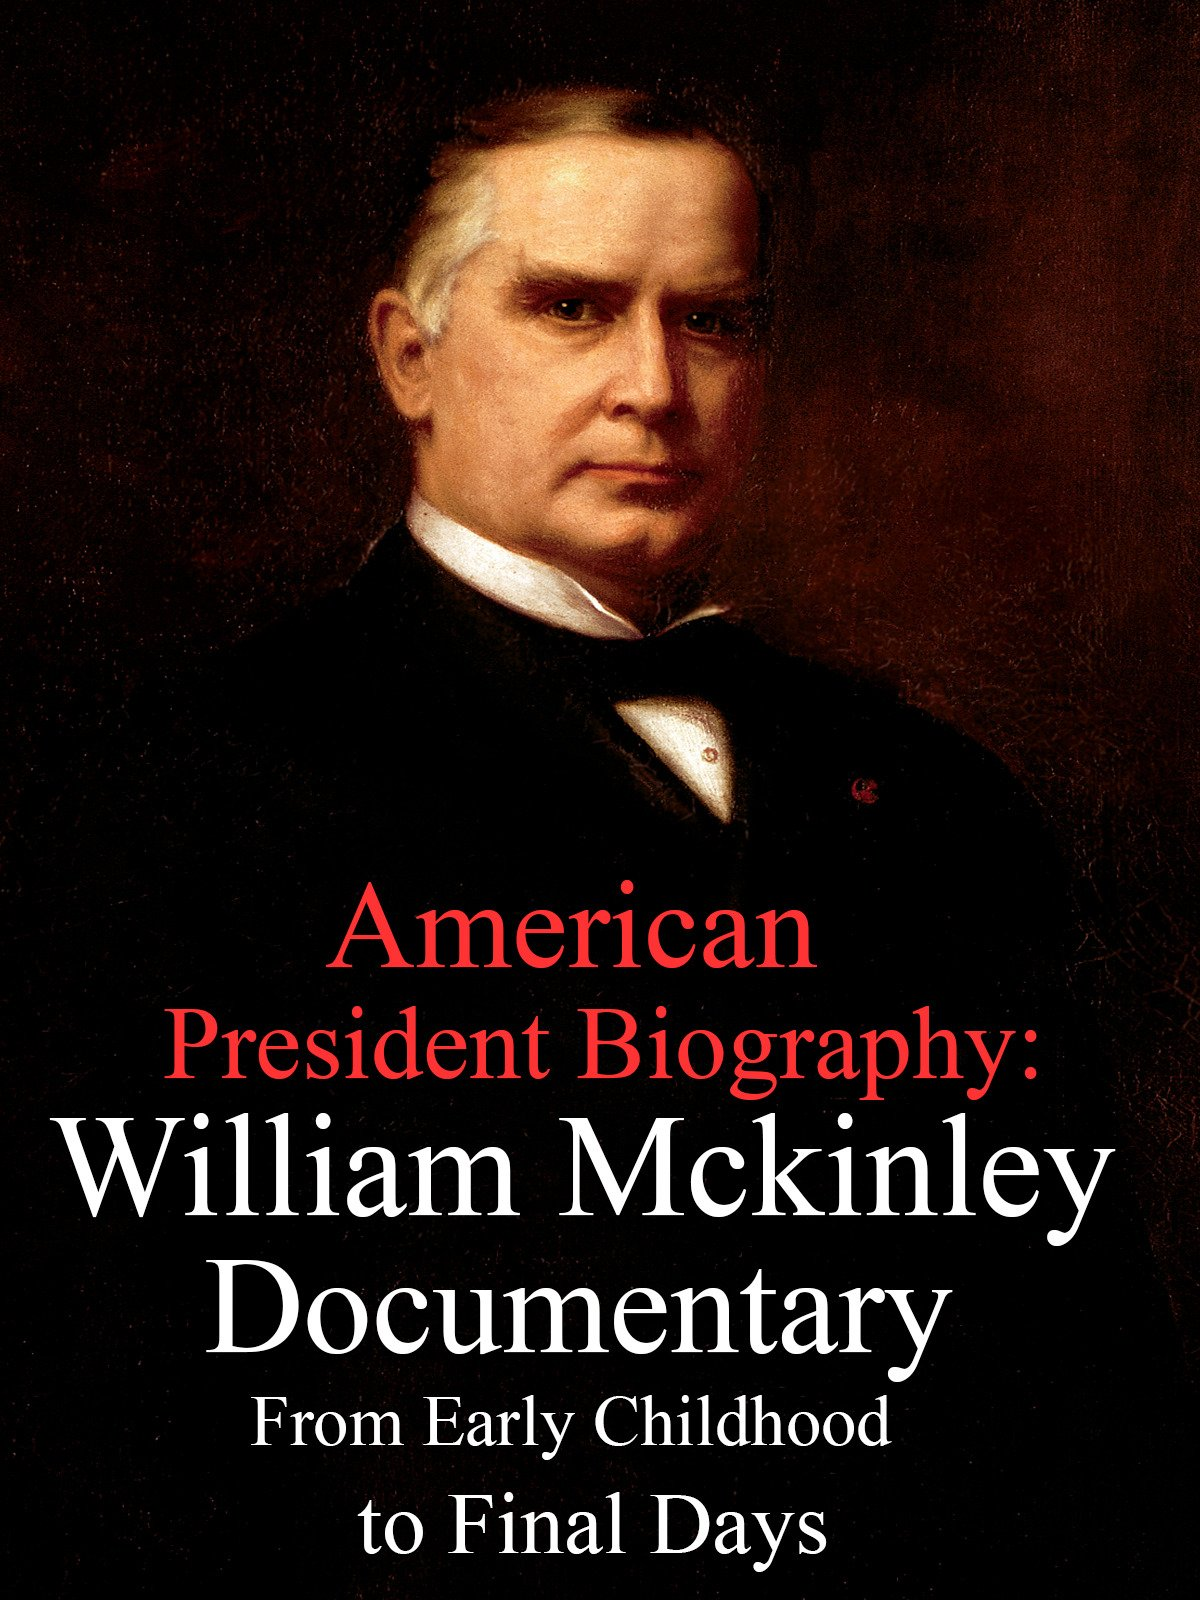 American President Biography: William McKinley Documentary from Early Childhood to Final Days